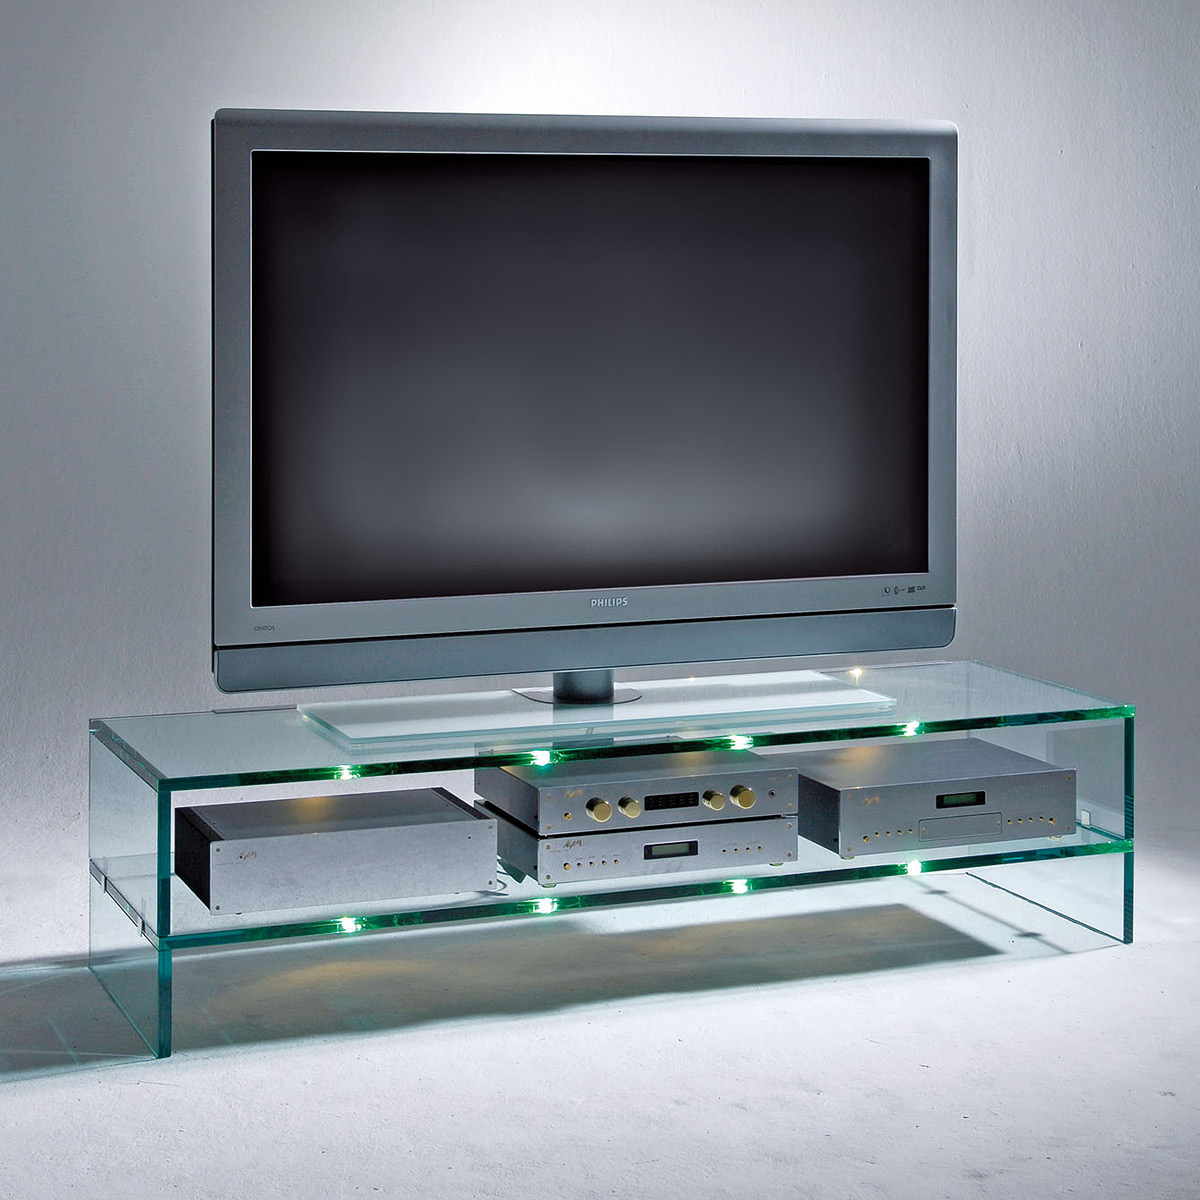 Design Tv Möbel Multimedia Heimkino Möbel Sideboards Für Lcd Plasma